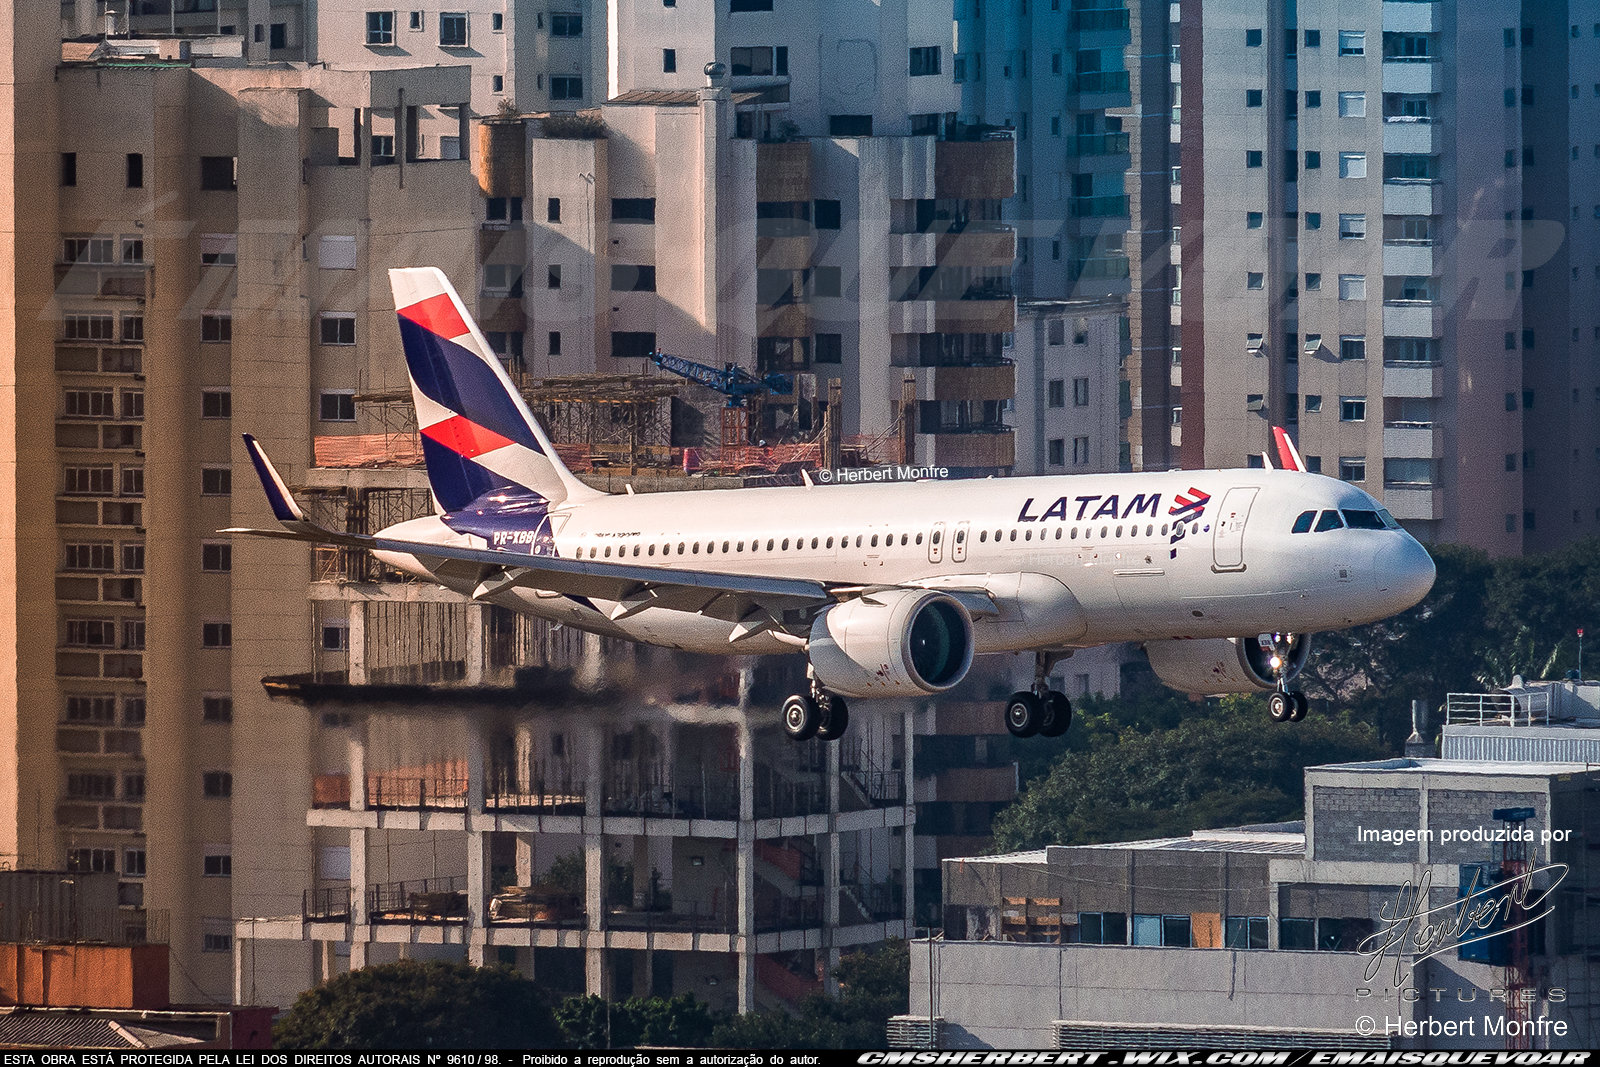 LATAM has already hired 250 people during the resumption and outlines plans for the air sector in the second half | | Photo © Herbert Monfre - Airplane photographer - Events - Advertising - Essays - Hire the photographer by e-mail cmsherbert@hotmail.com | Image produced by Herbert Pictures - MORE THAN FLY